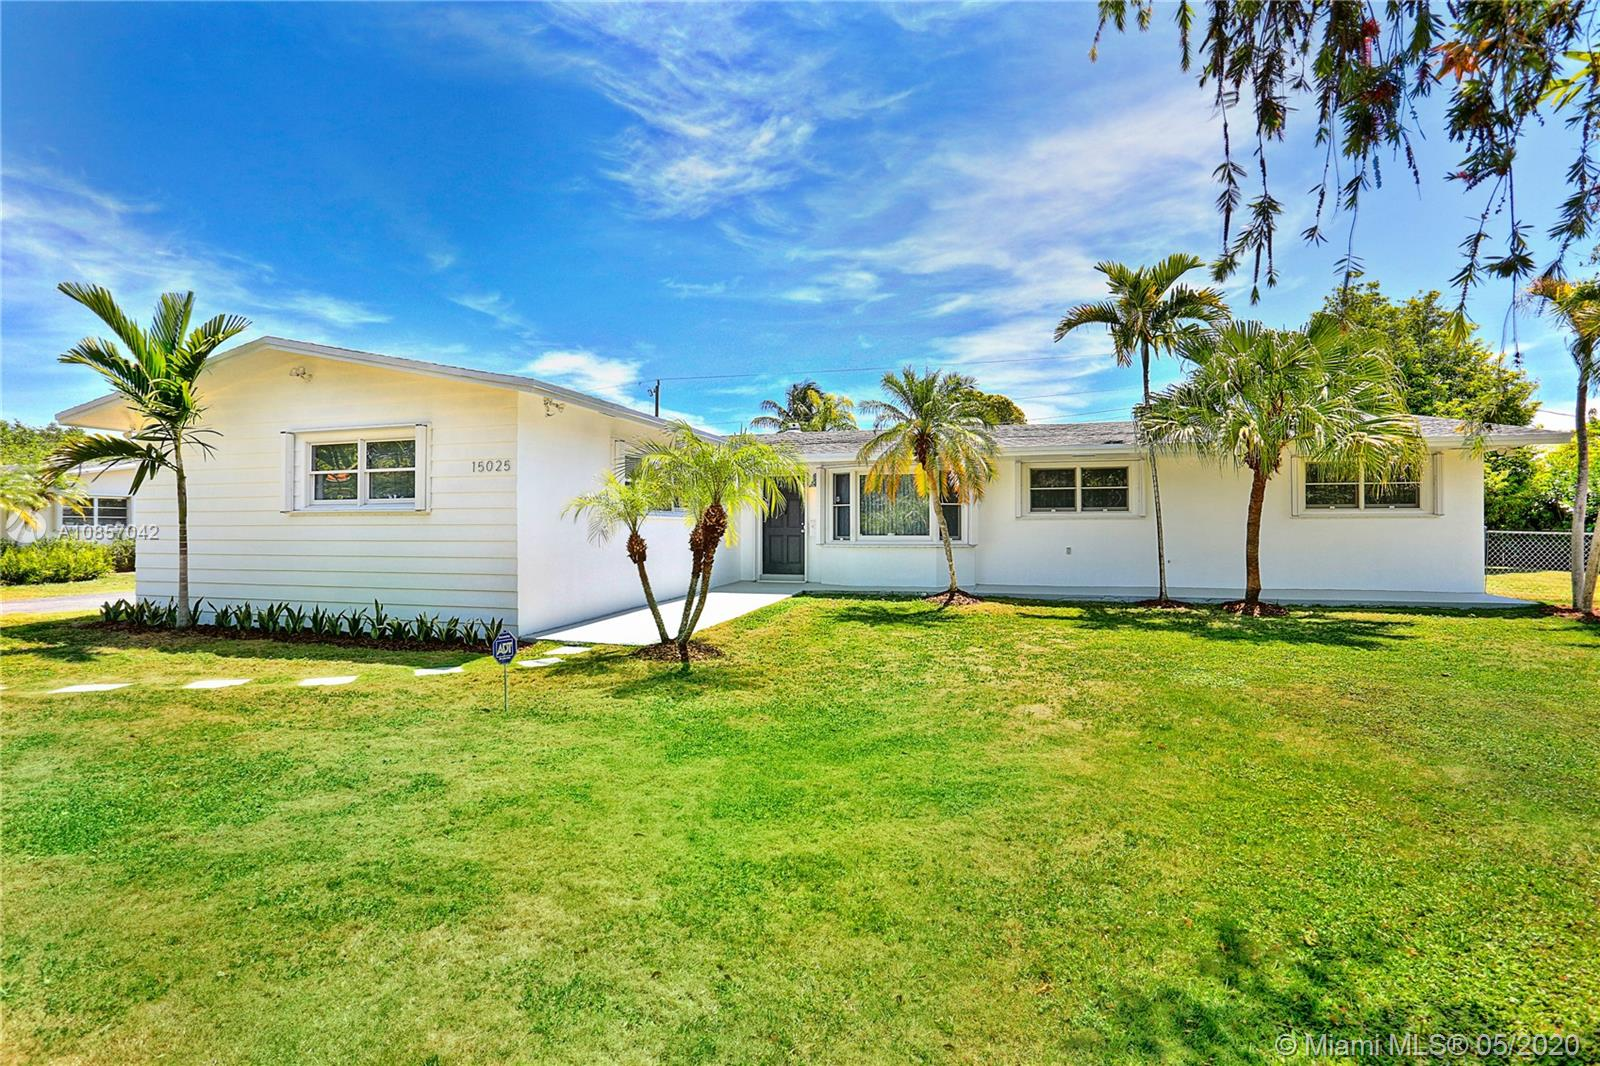 15025 SW 82nd Ave, Palmetto Bay, Florida 33158, 3 Bedrooms Bedrooms, ,2 BathroomsBathrooms,Residential,For Sale,15025 SW 82nd Ave,A10857042